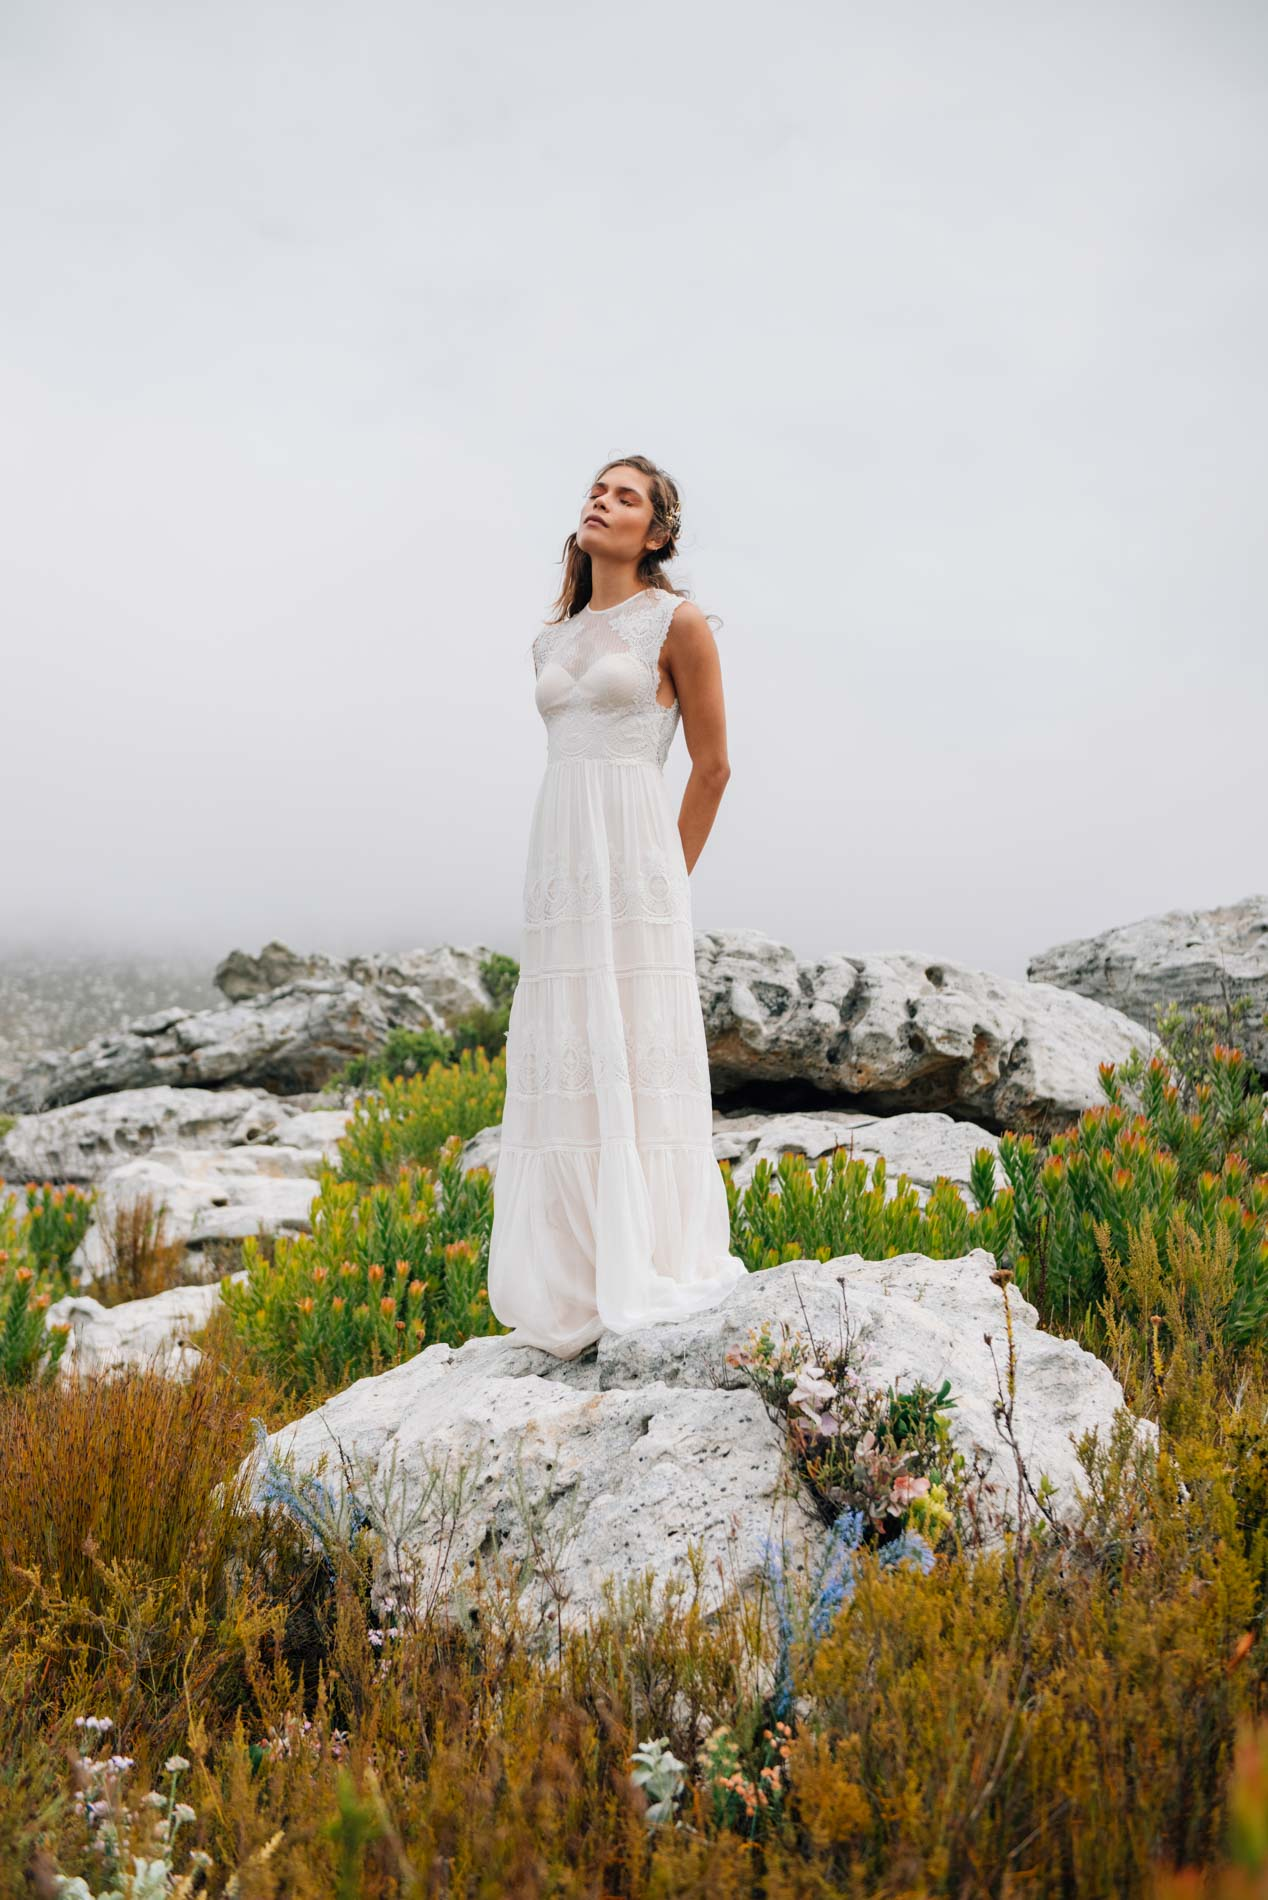 Nicolette by Catherine Deane, wedding gowns for Hampshire Brides